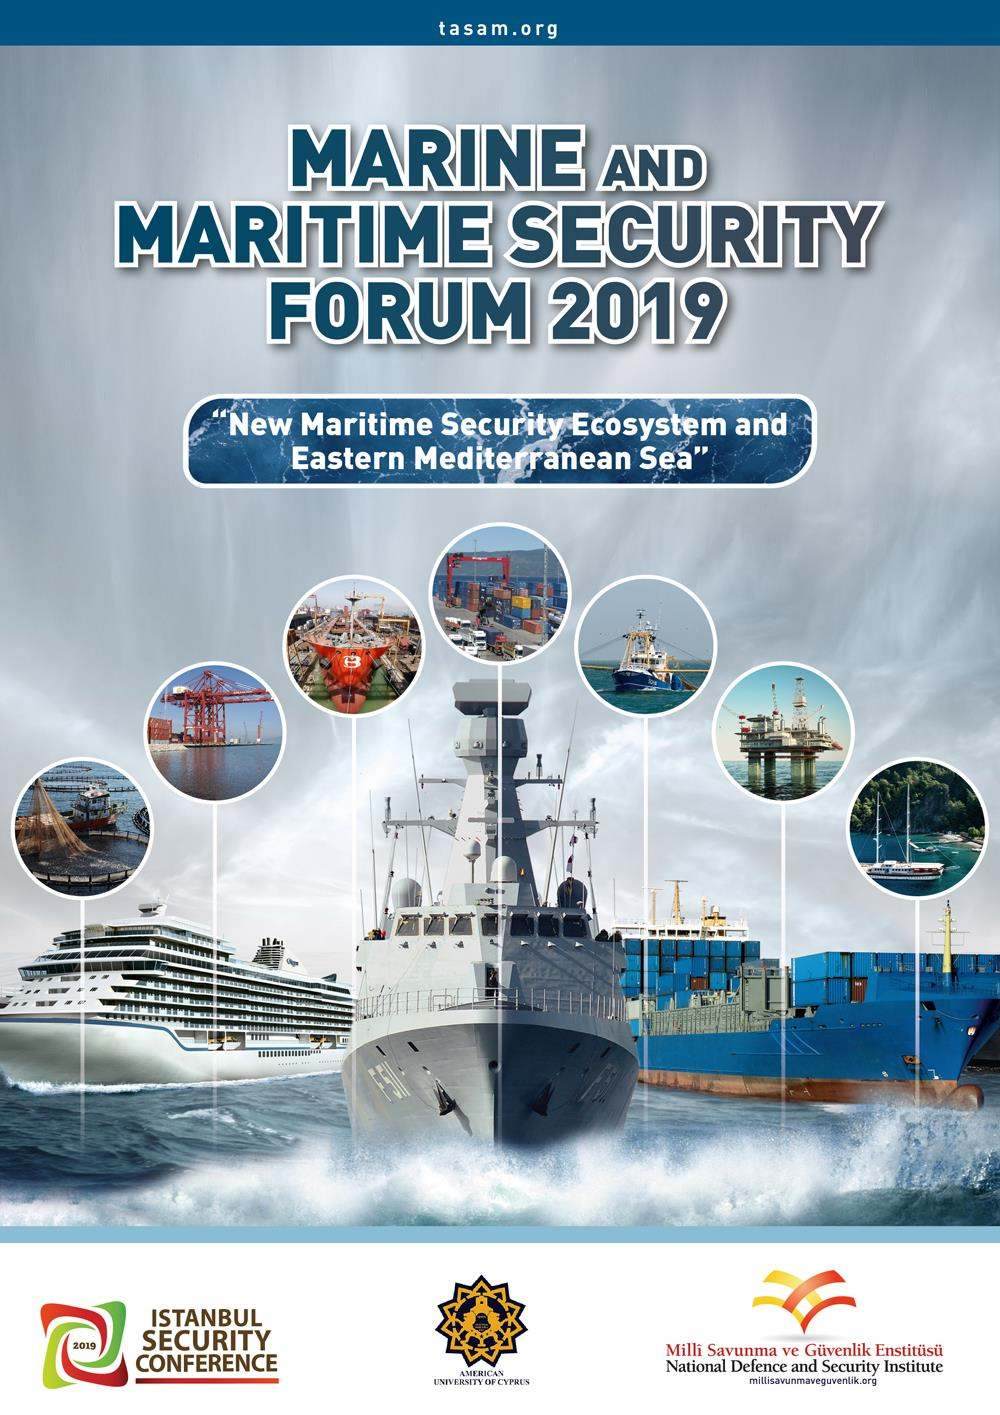 Marine and Maritime Security Forum 2019